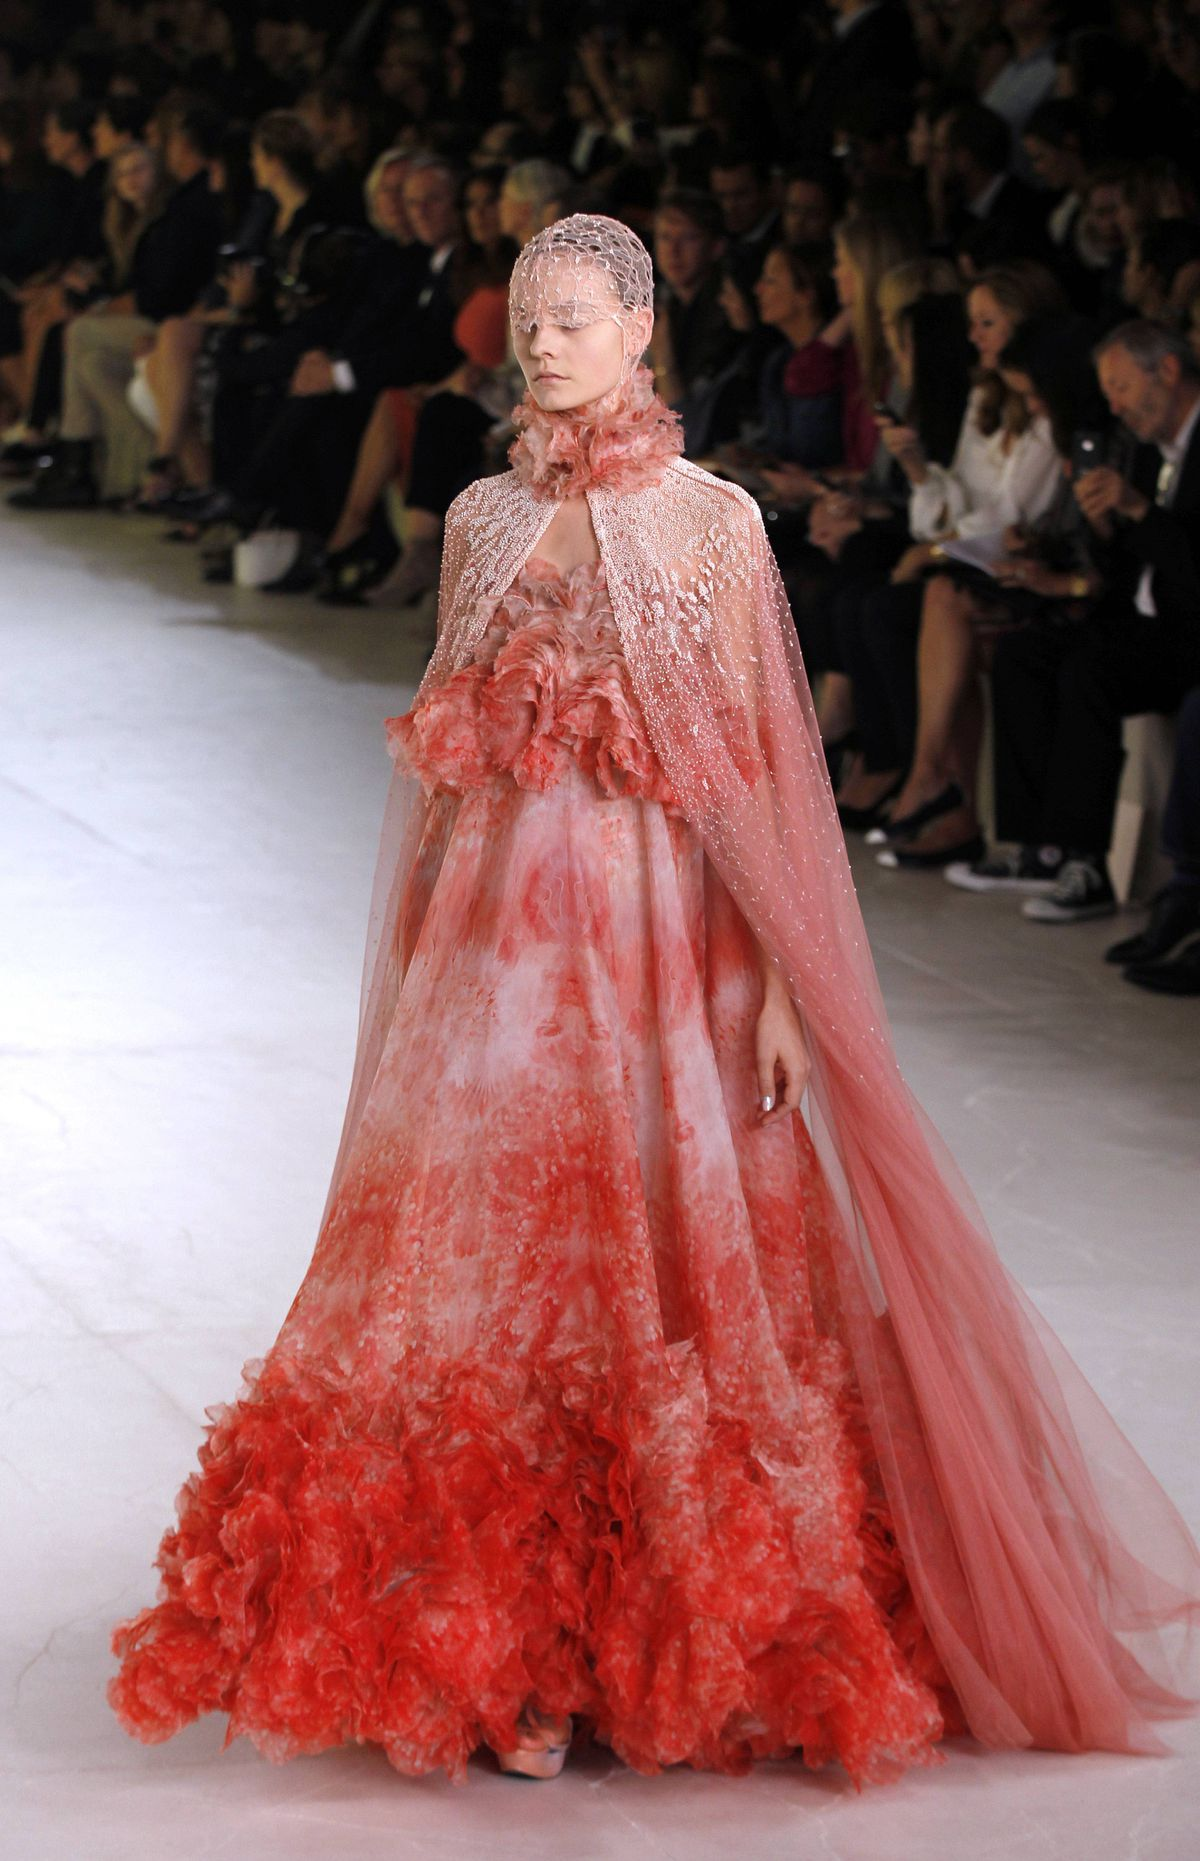 This gown is a museum piece, un-plain and un-simple. Bravo to Burton, start to finish.